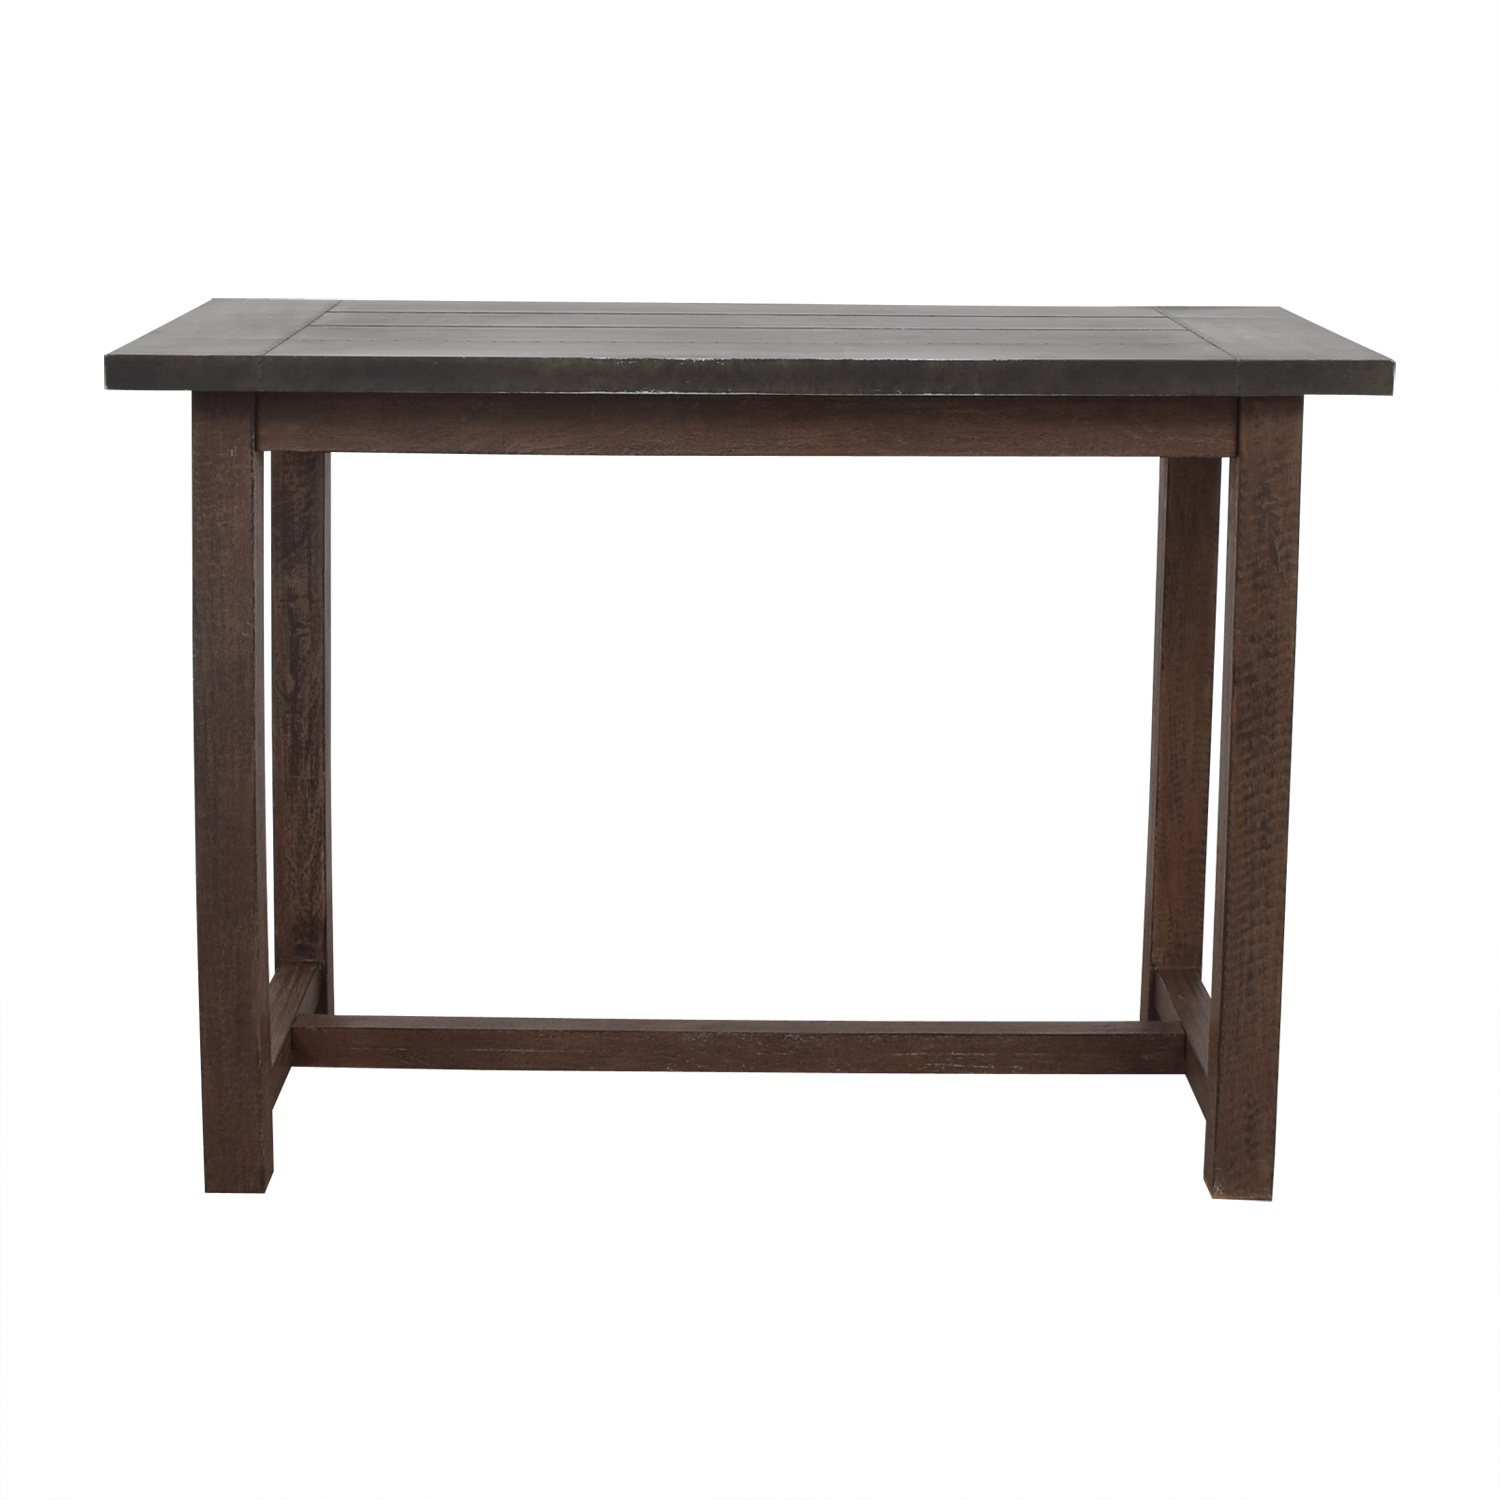 shop Crate & Barrel Crate & Barrel Galvin High Dining Table online